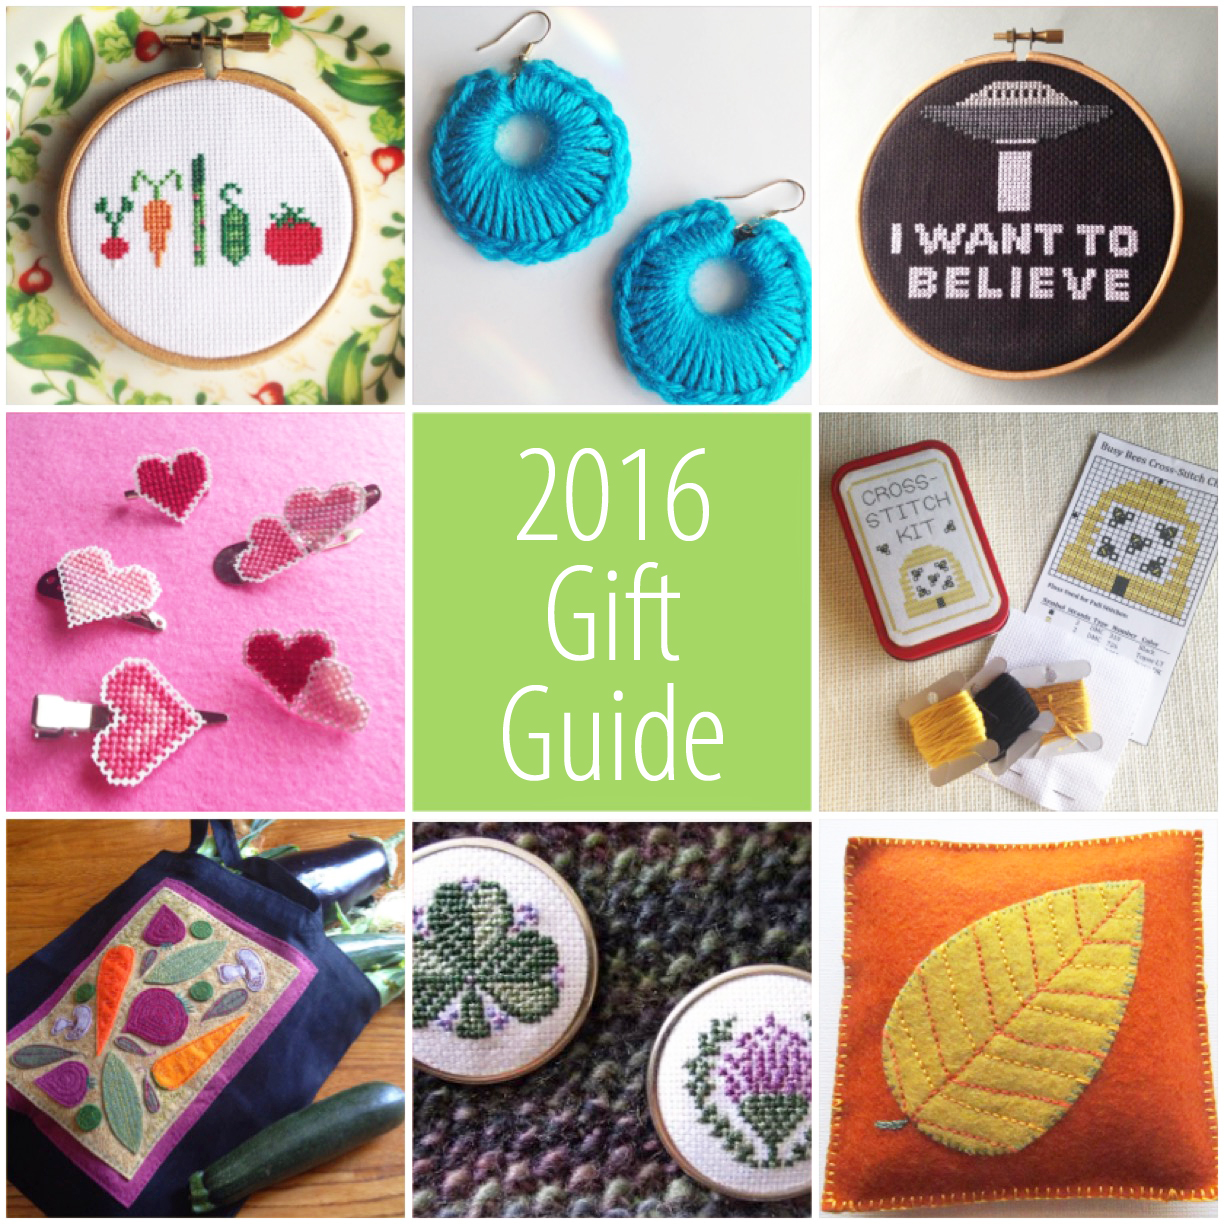 kbb crafts amp stitches 2016 holiday gift guide